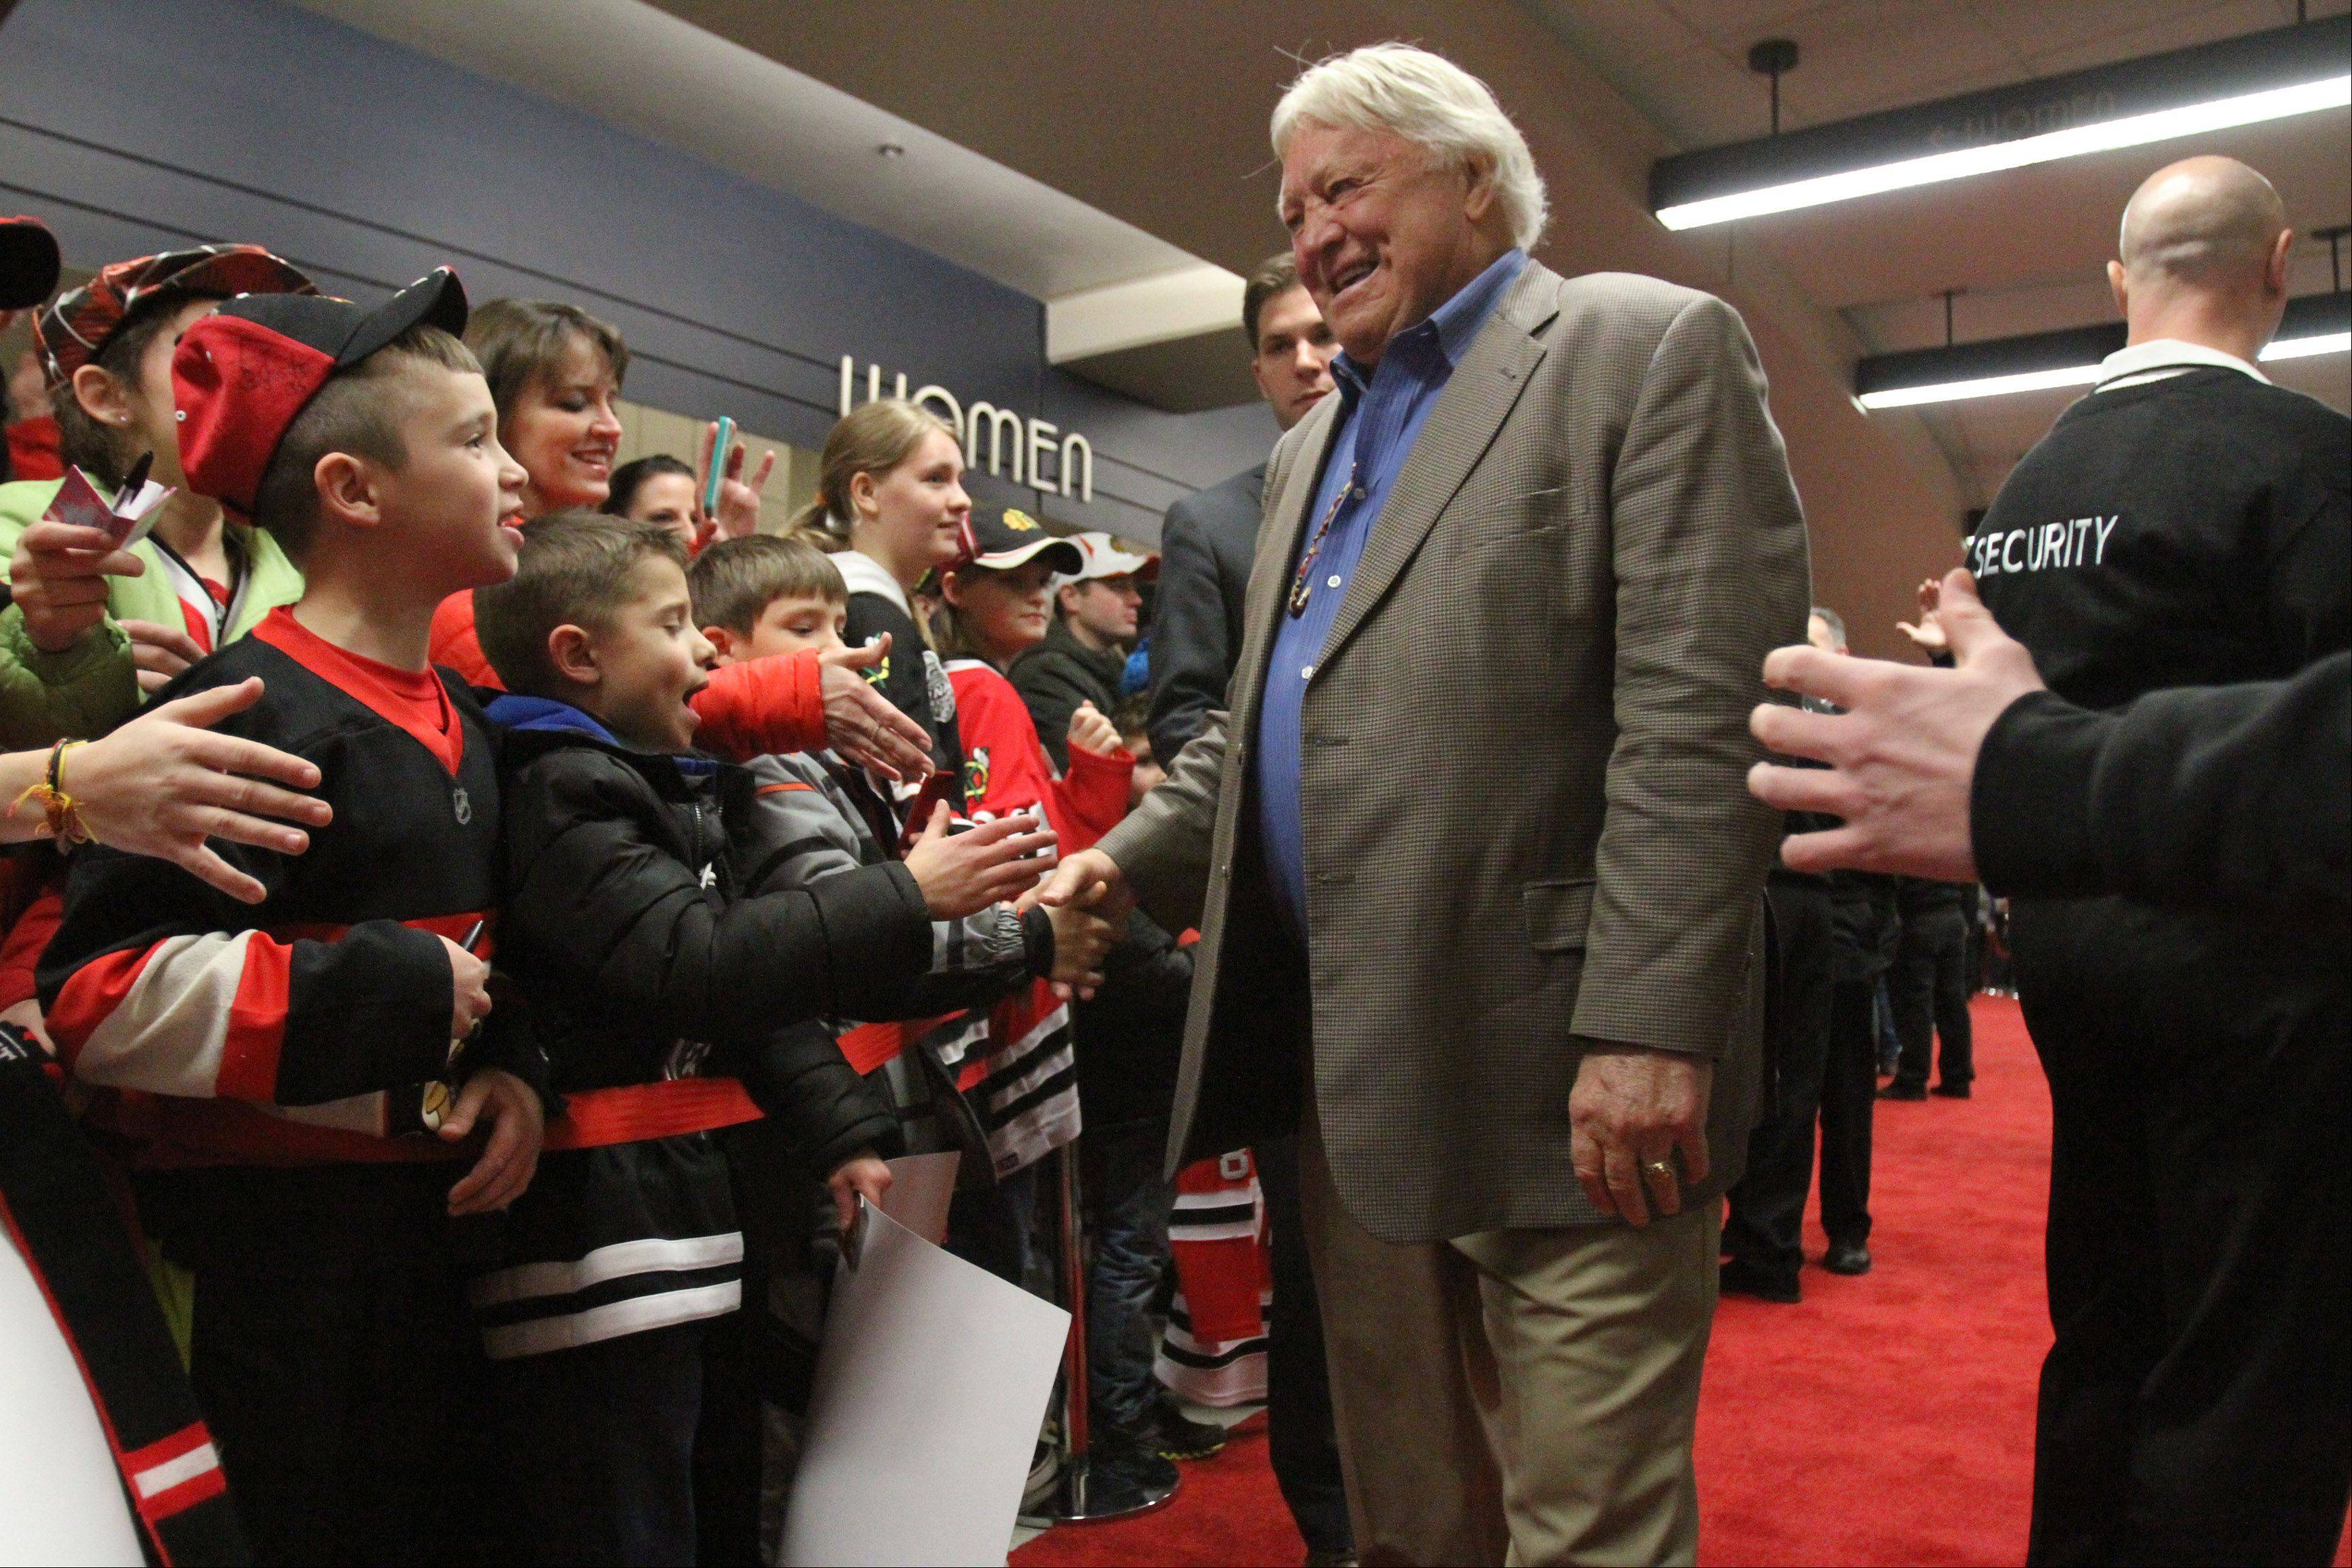 Chicago Blackhawks great Bobby Hull greets fans during the red carpet event before the home opener.